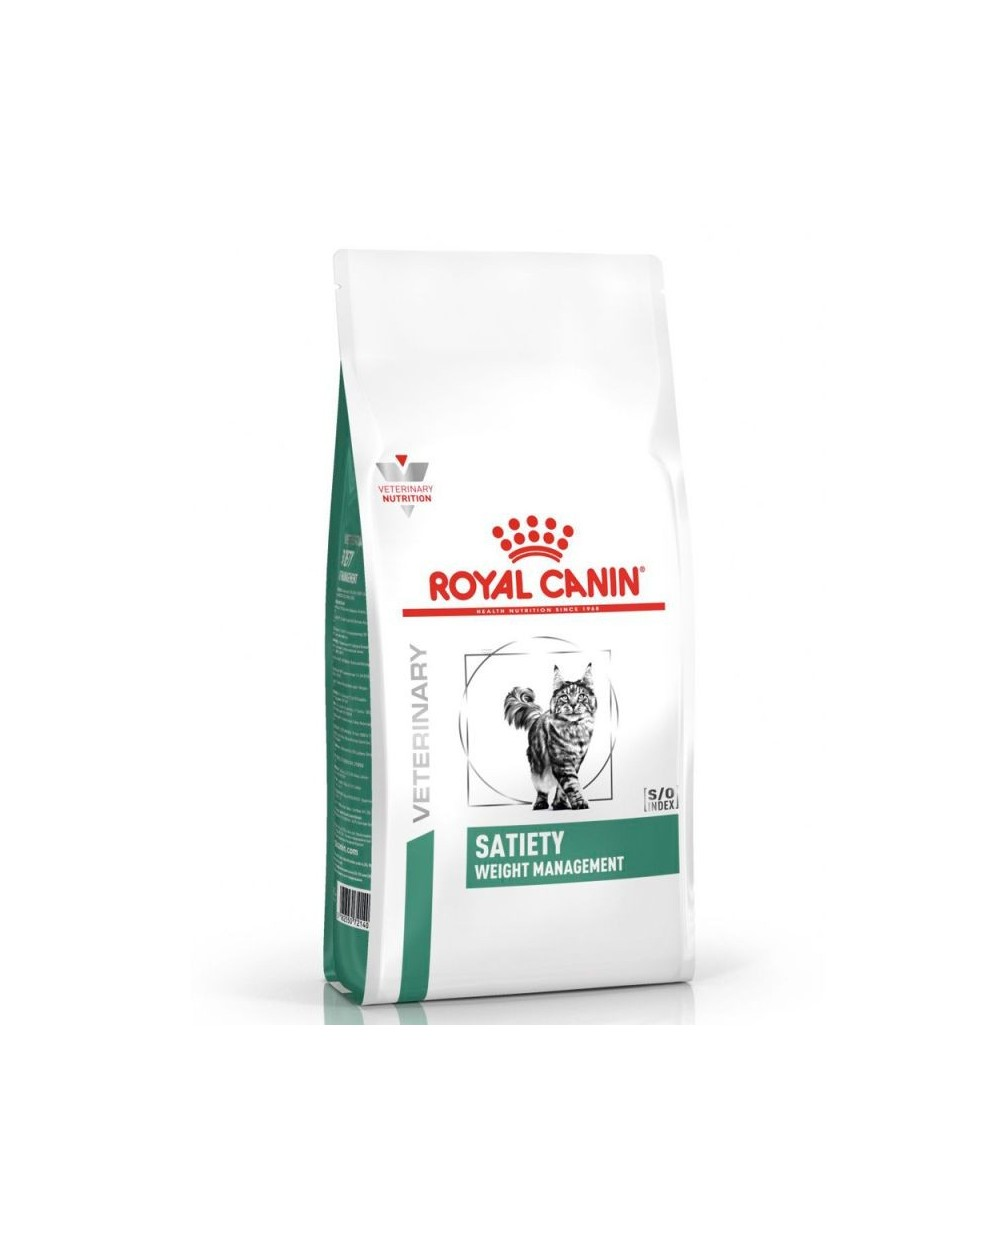 Royal Canin - Satiety Weight Management Dry